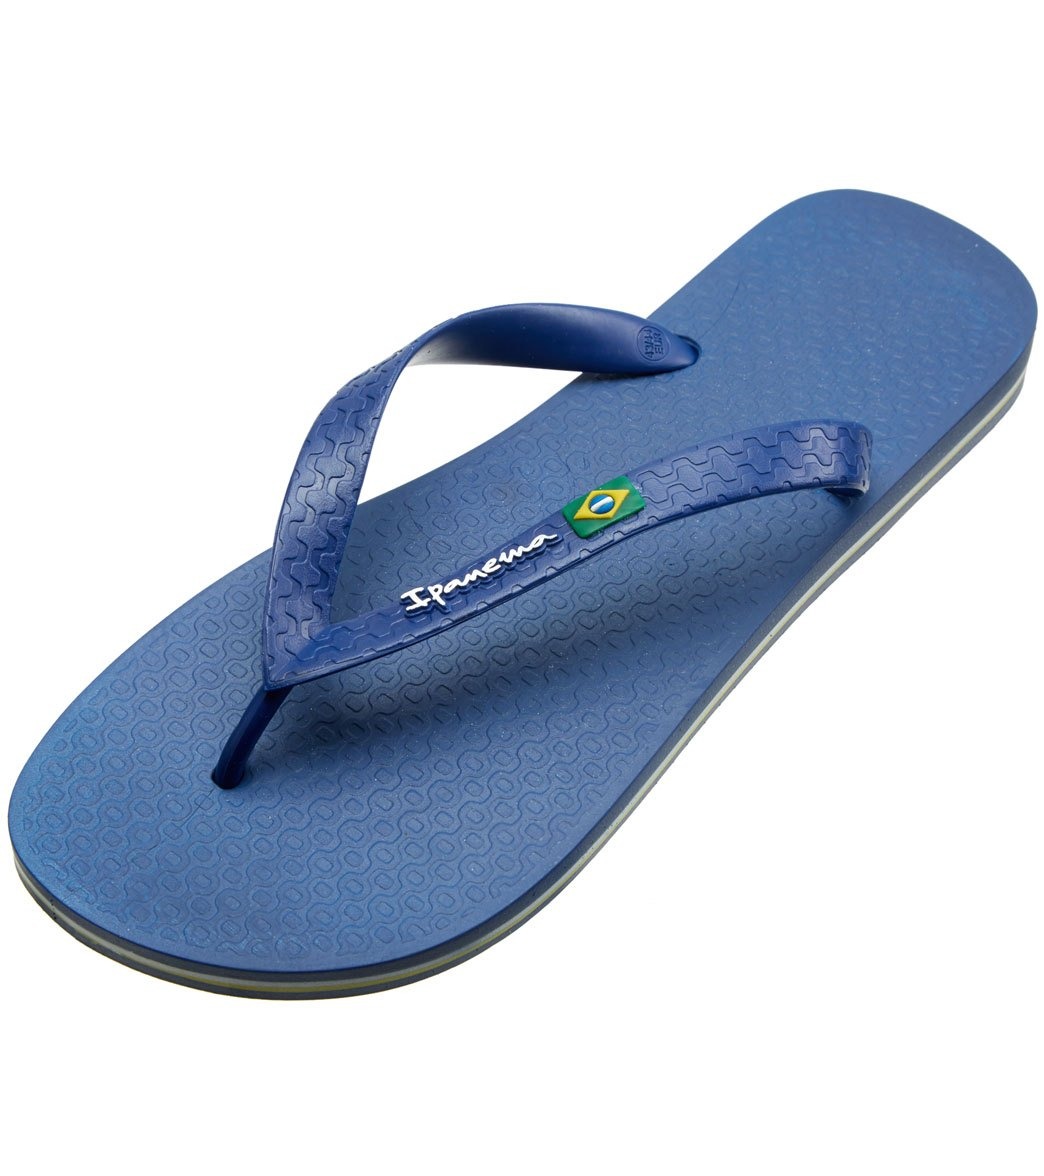 1da233ba820a Ipanema Men s Classic Brazil II Flip Flop at SwimOutlet.com